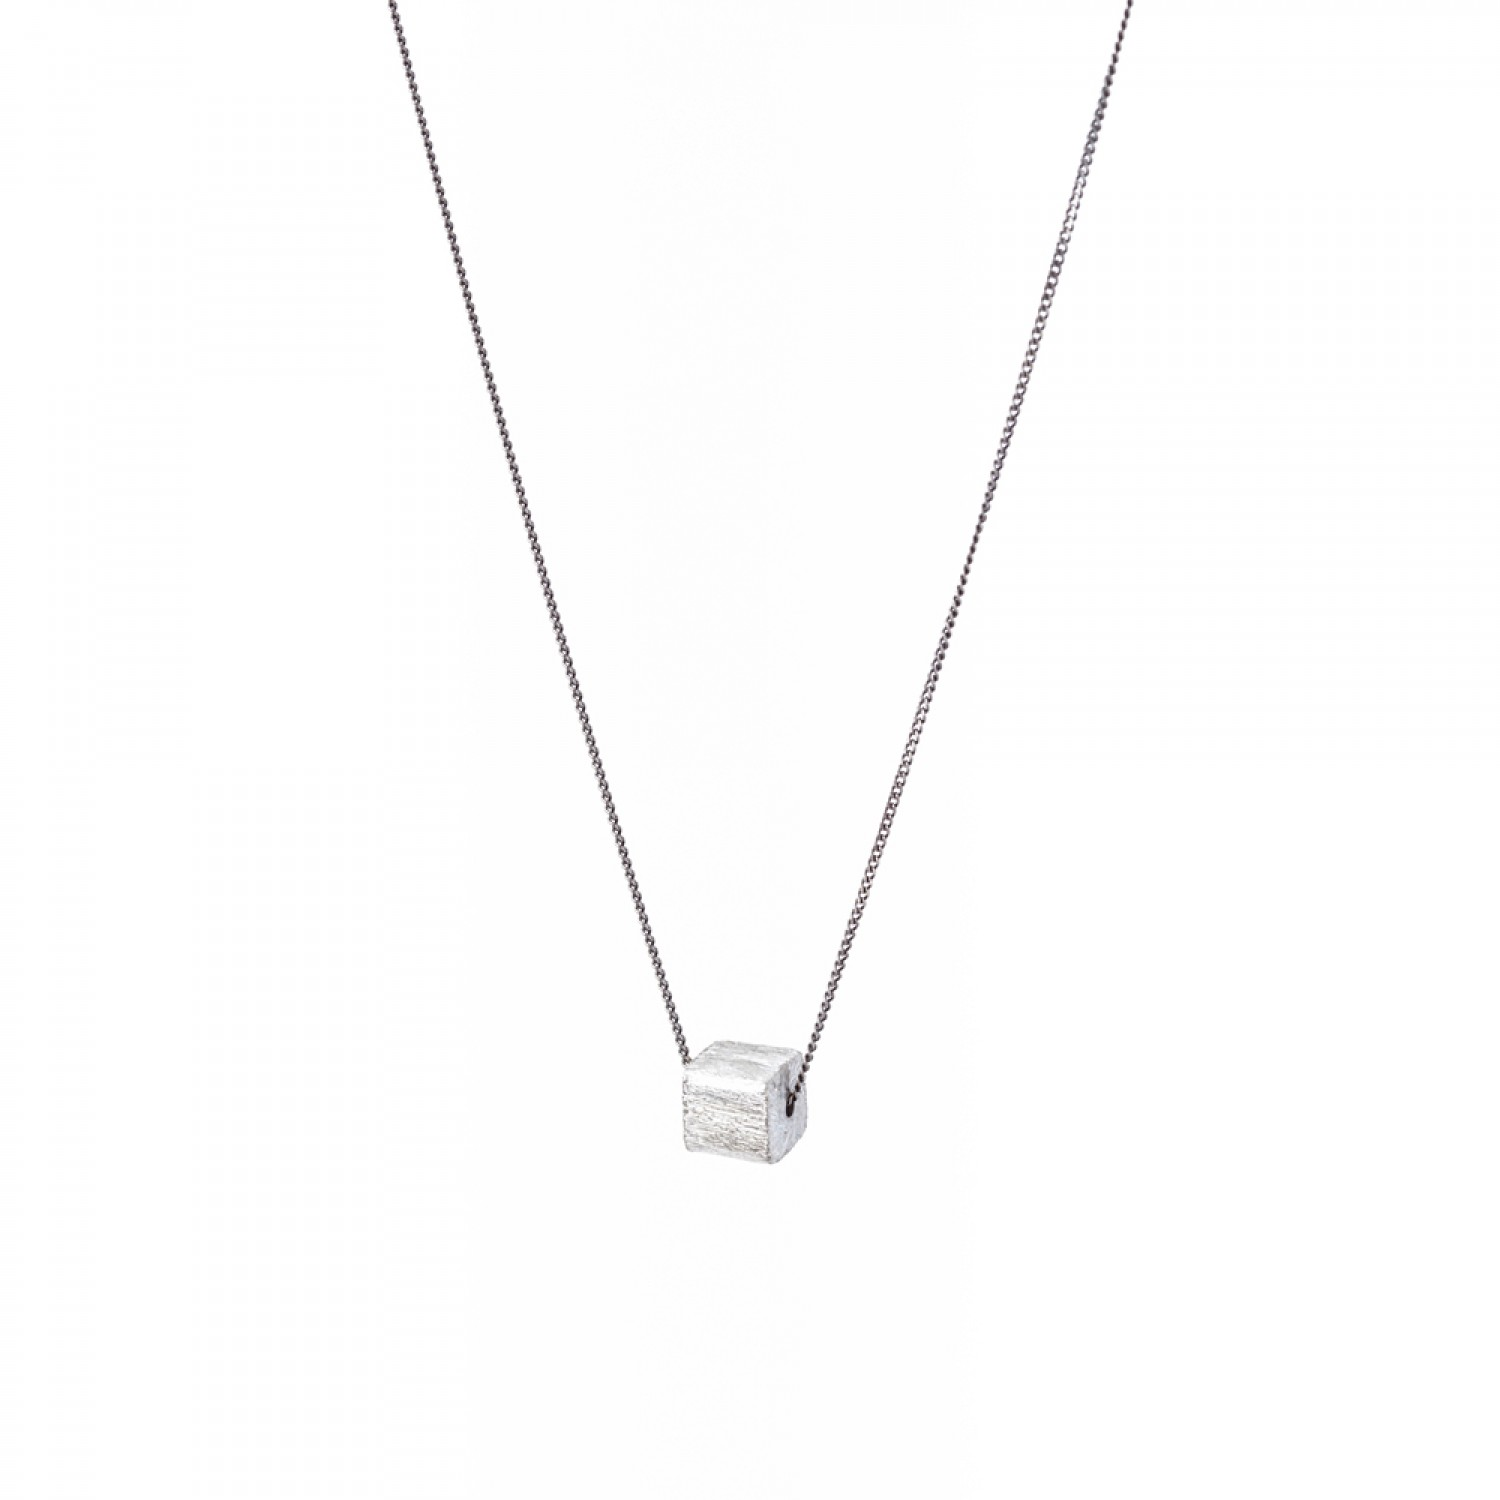 Tiny Silver Cube Necklace